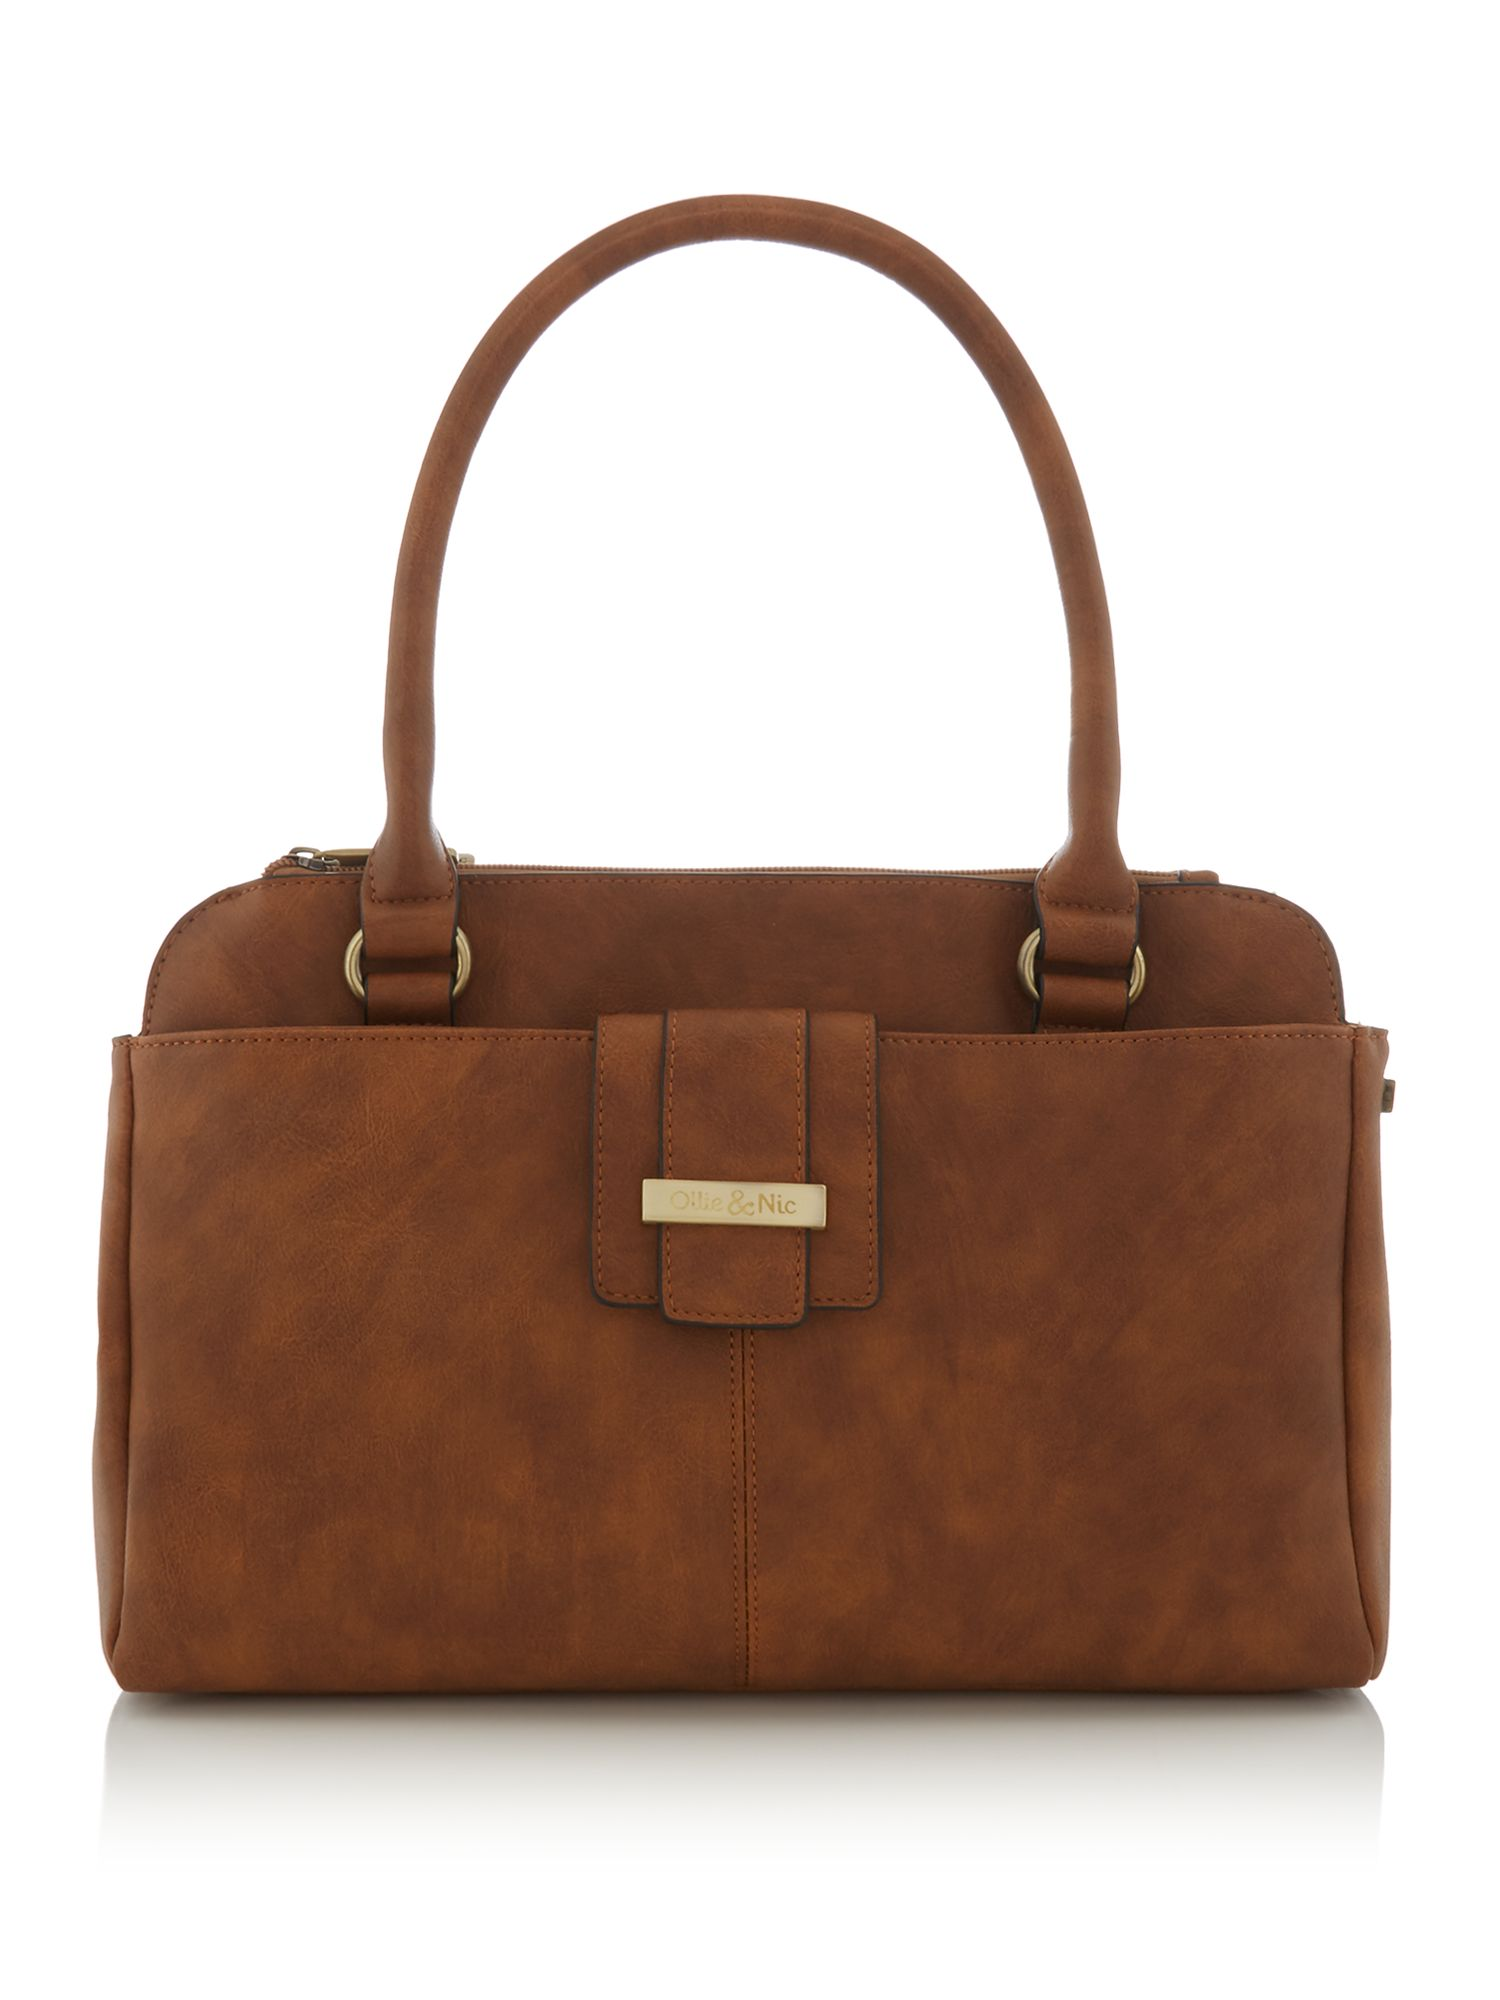 Ollie & Nic Evie shoulder bag, Tan